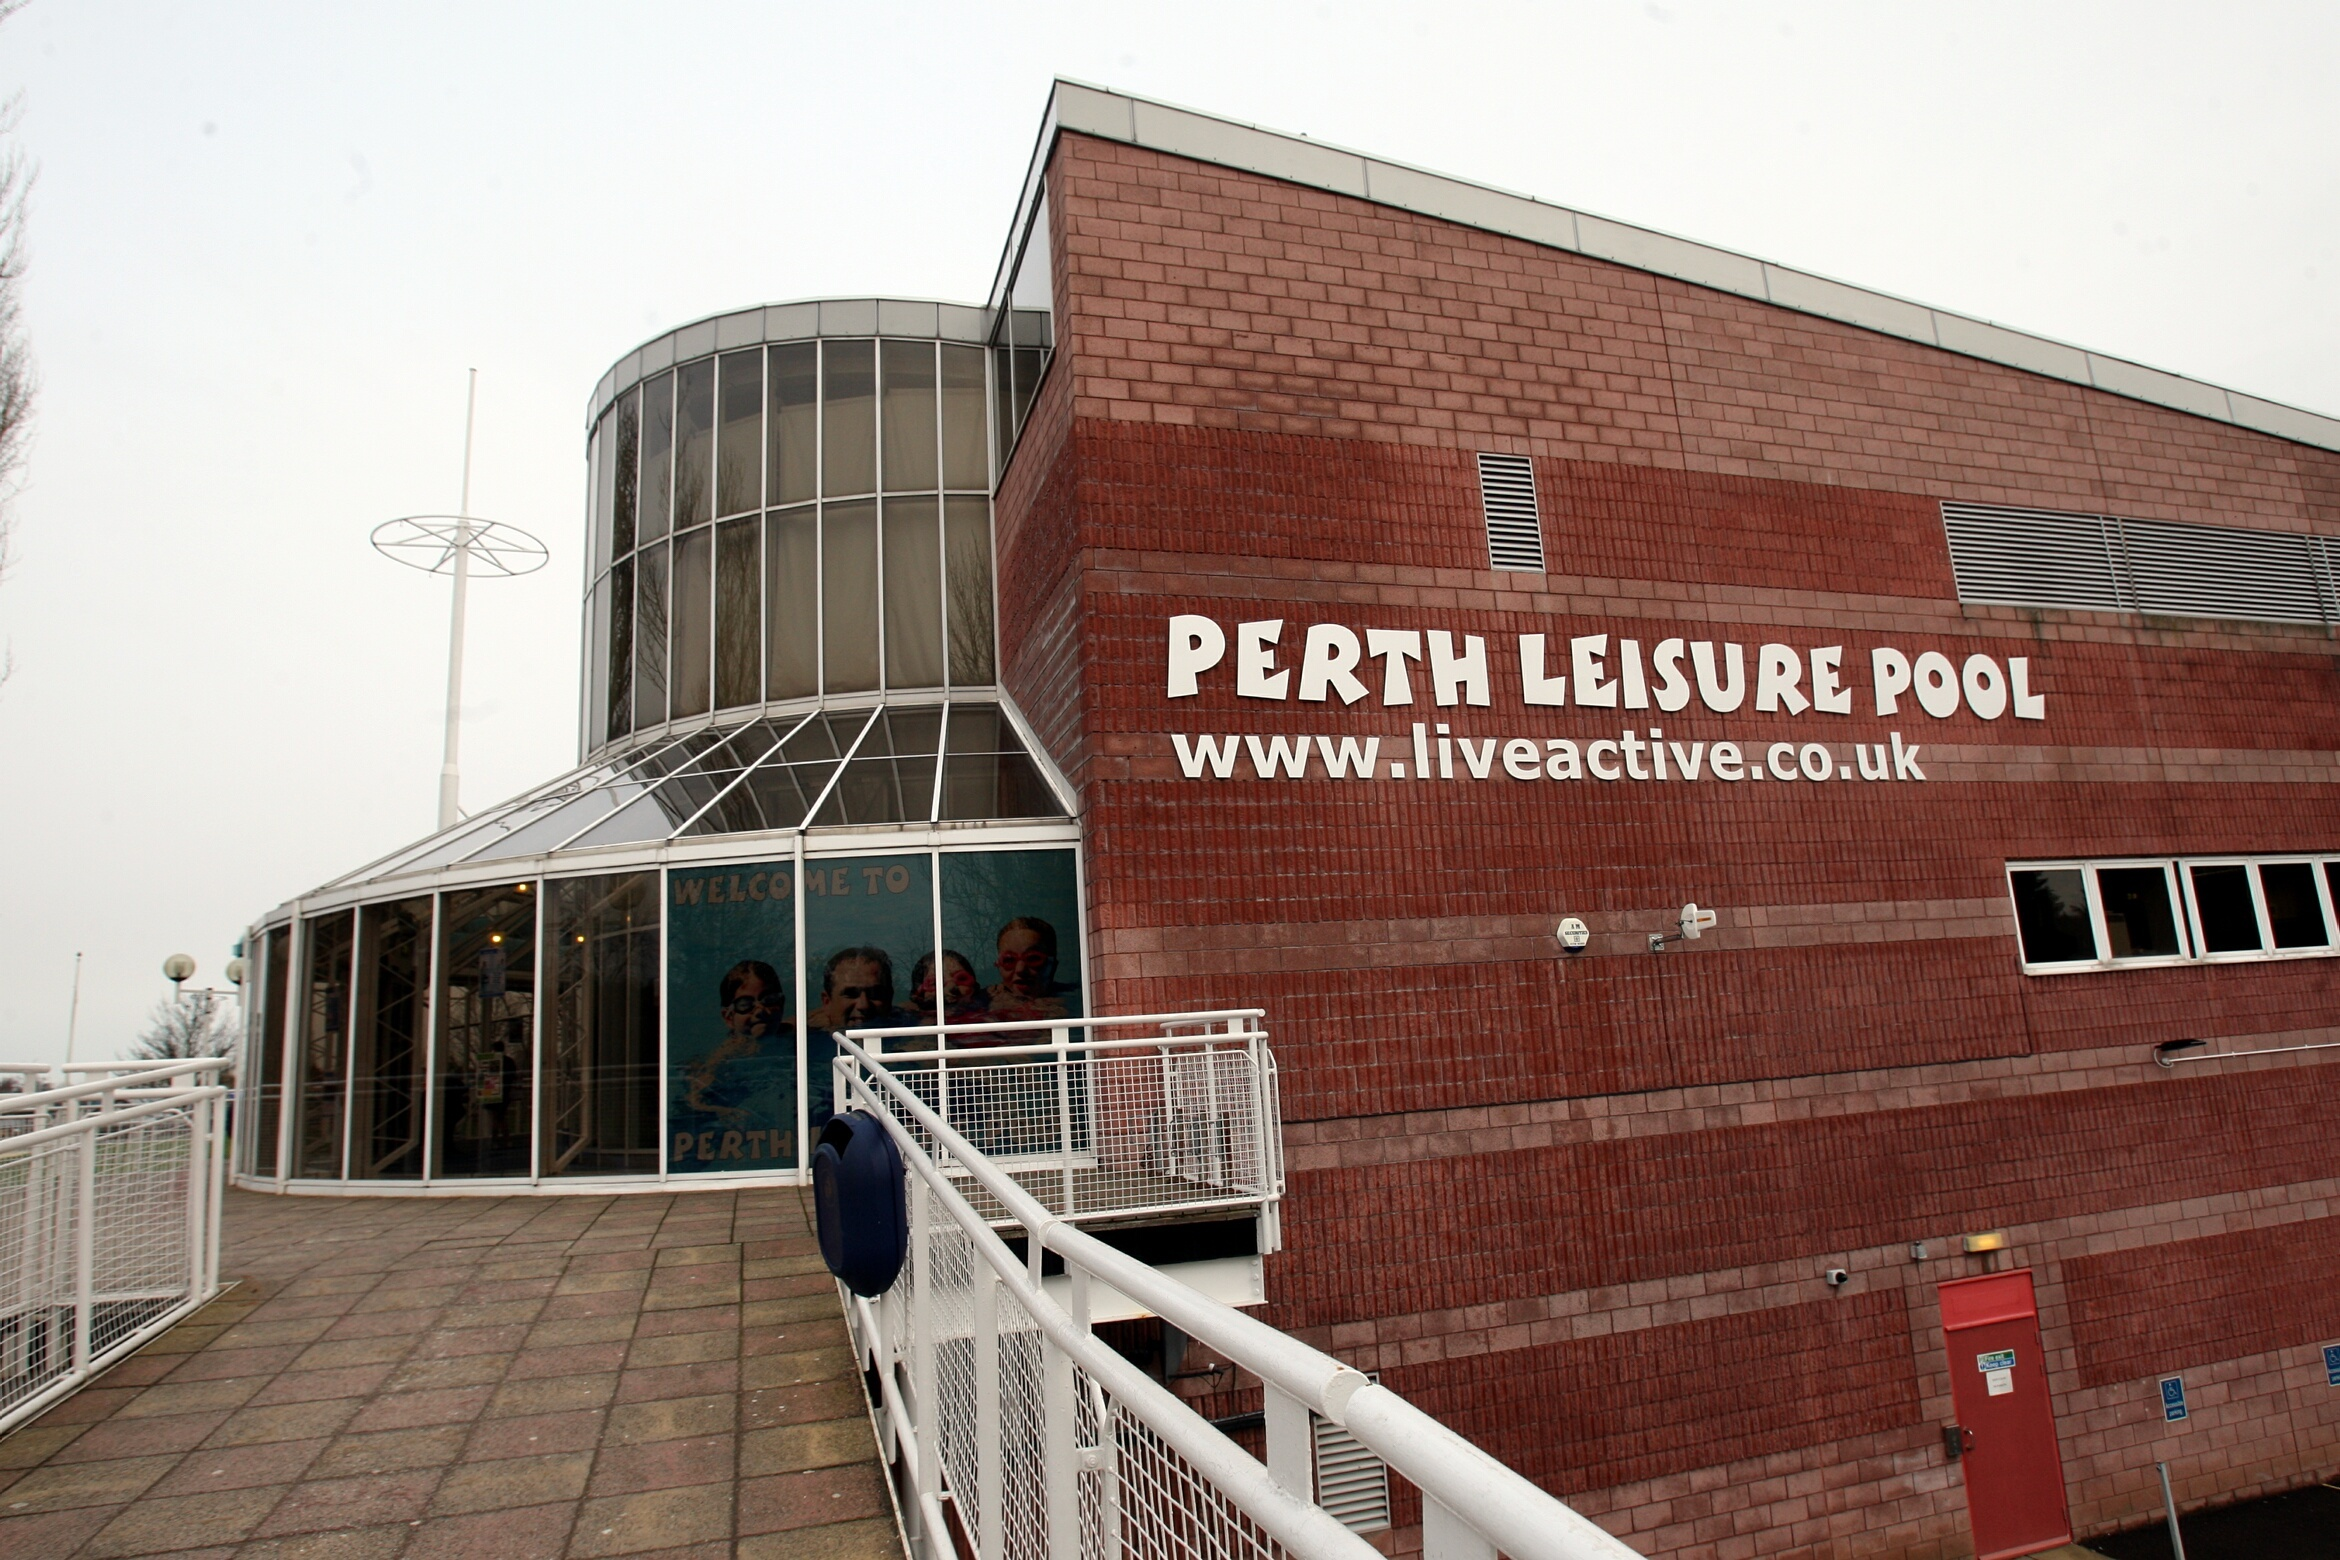 Perth Leisure Pool.